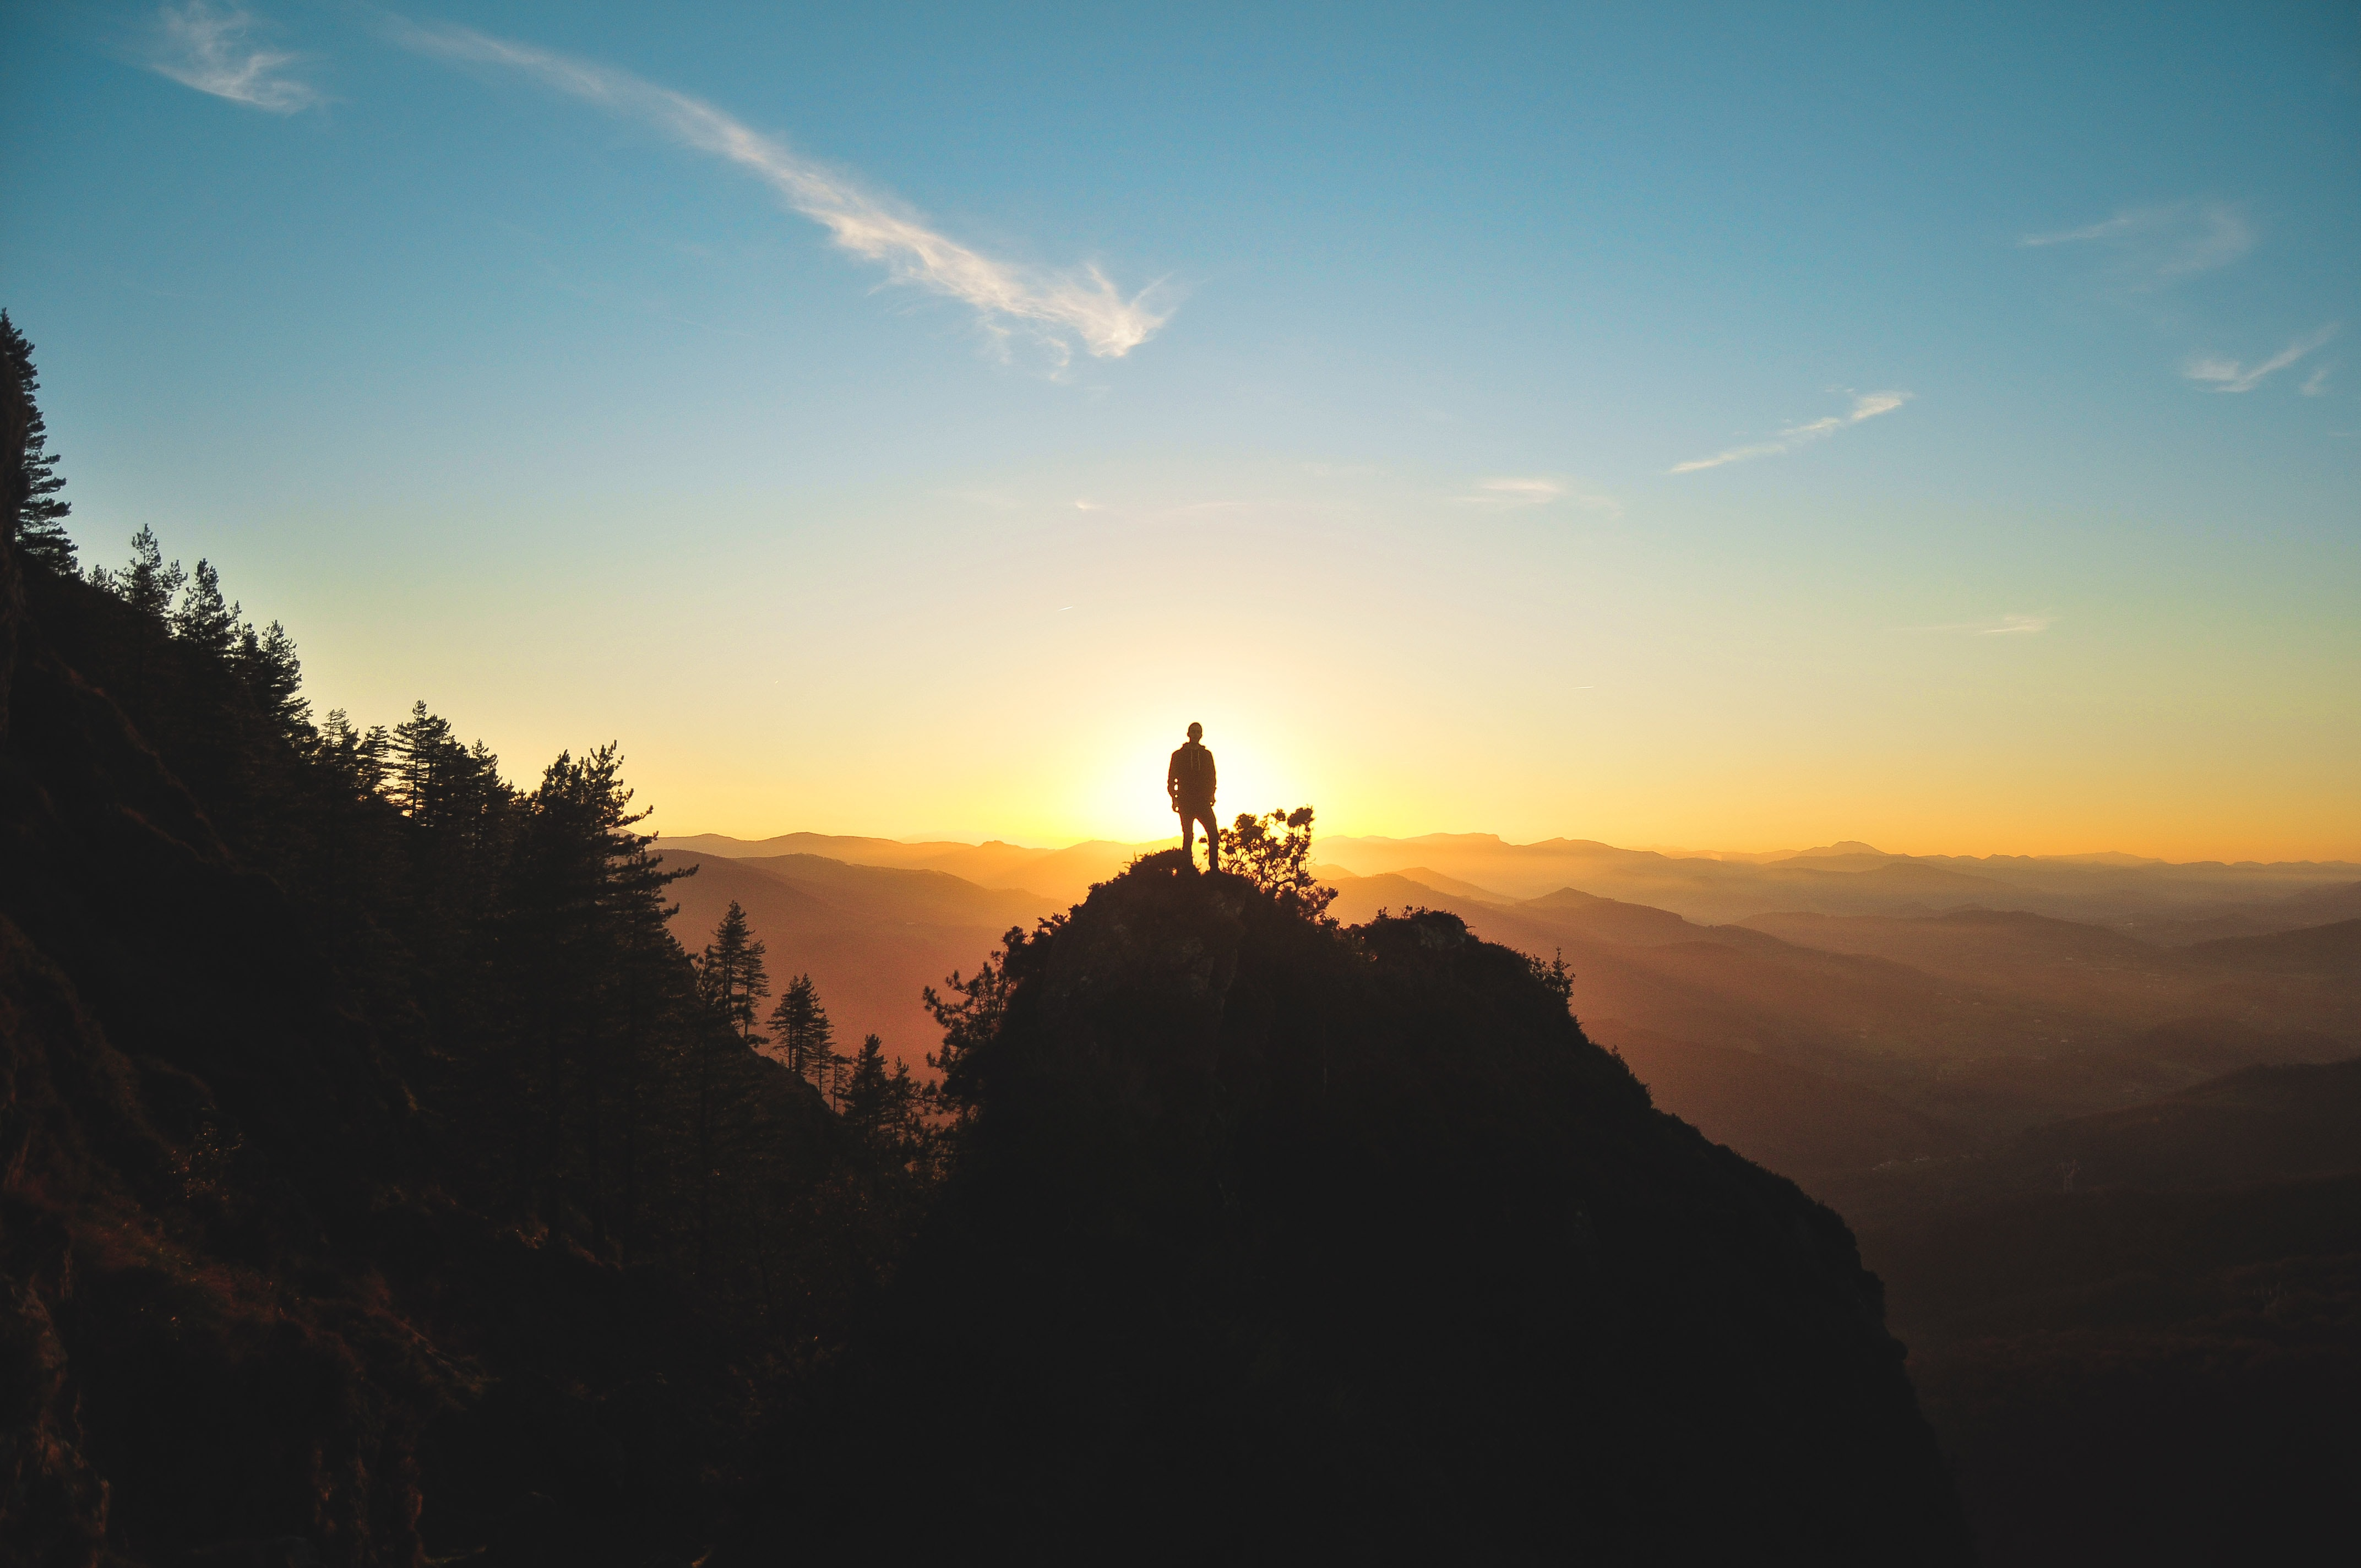 A man standing on a tall rock silhouetted against the setting sun